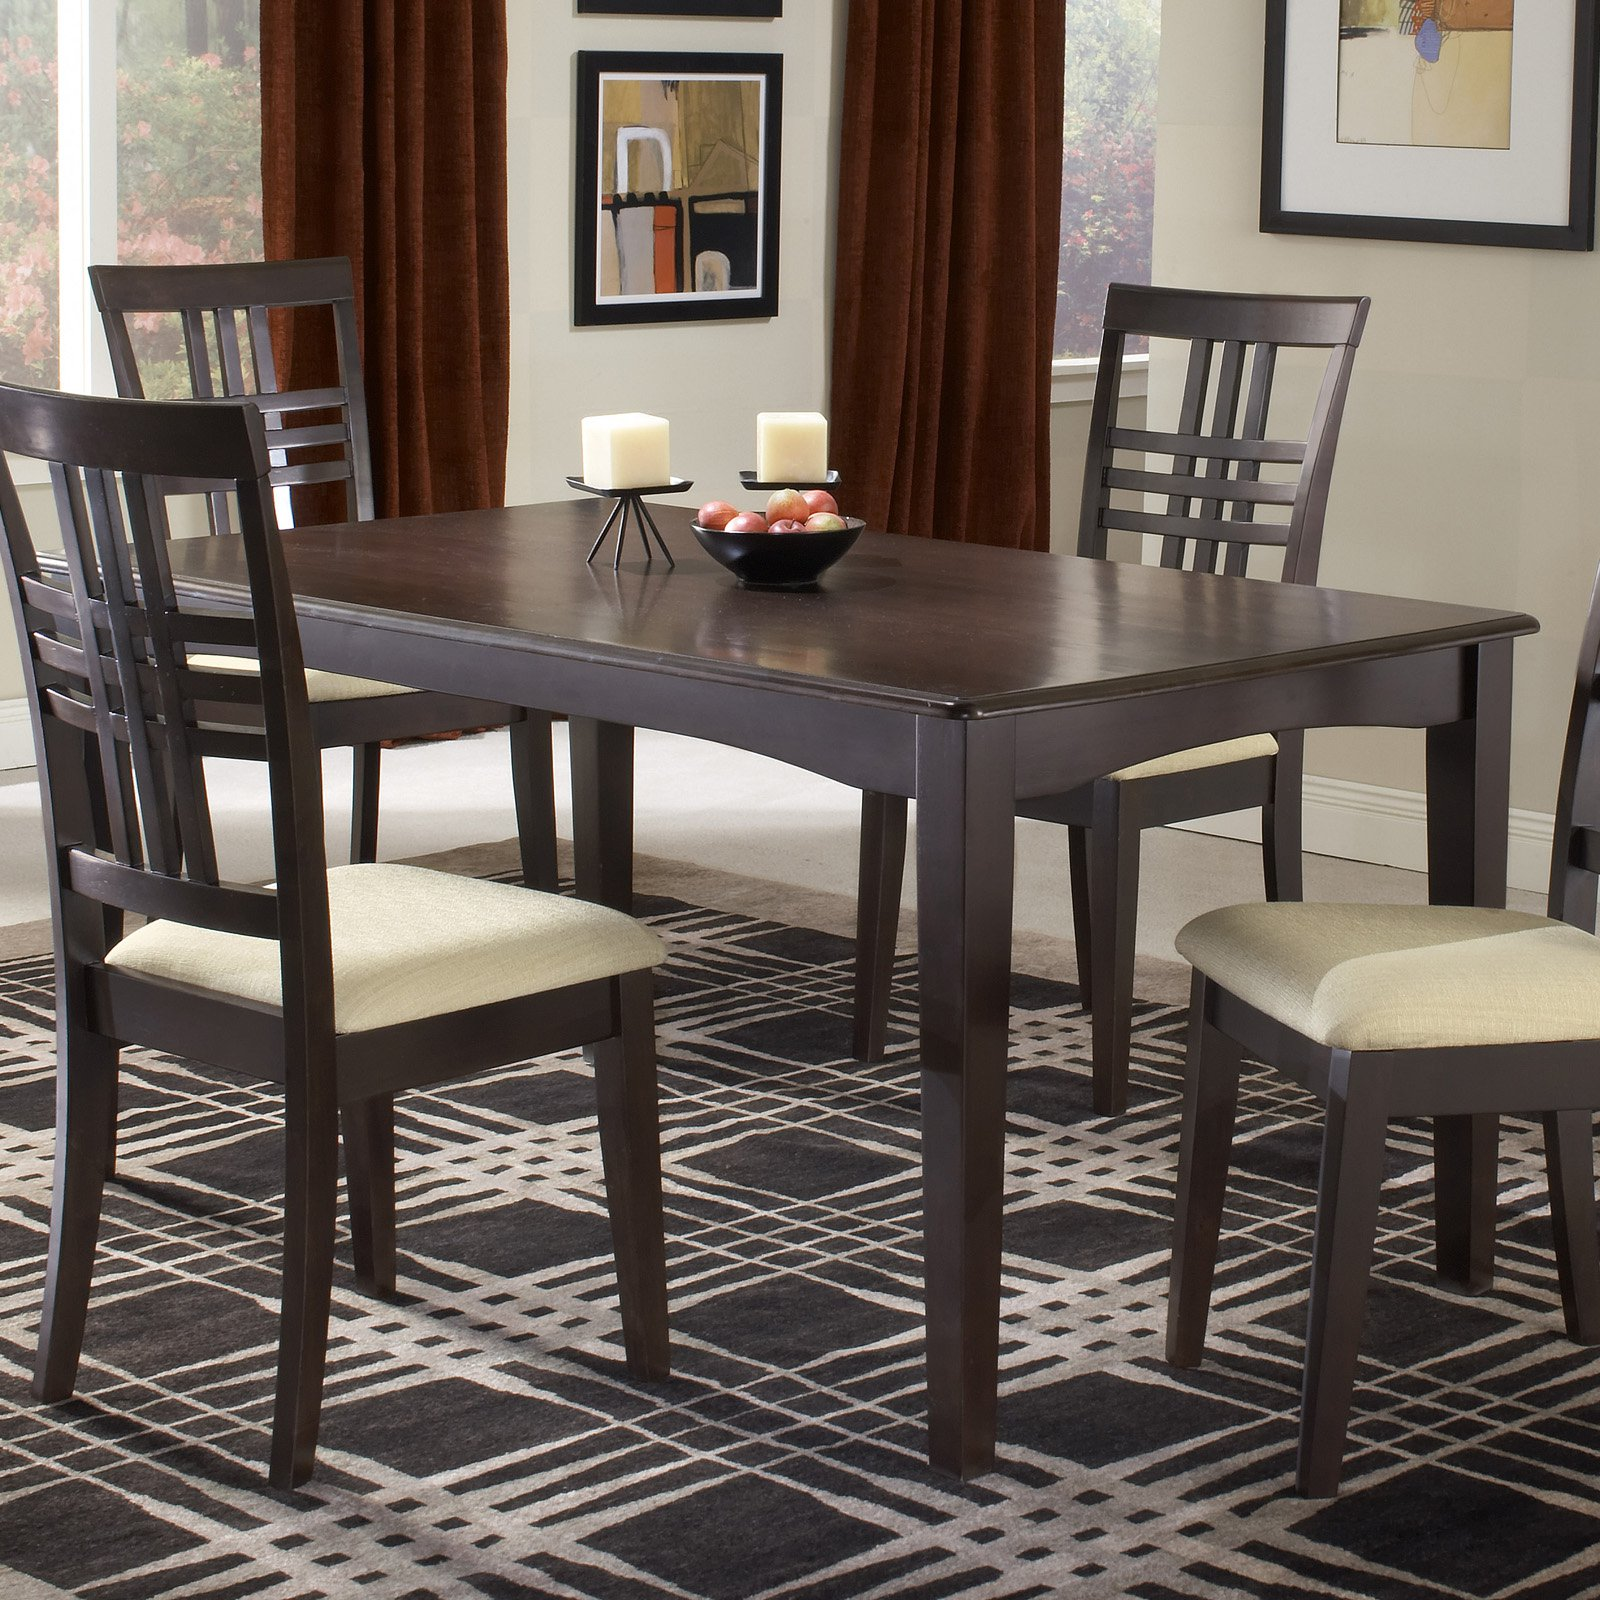 Hillsdale Tiburon 36 x 60 Fix Top Dining Table - Espresso ...